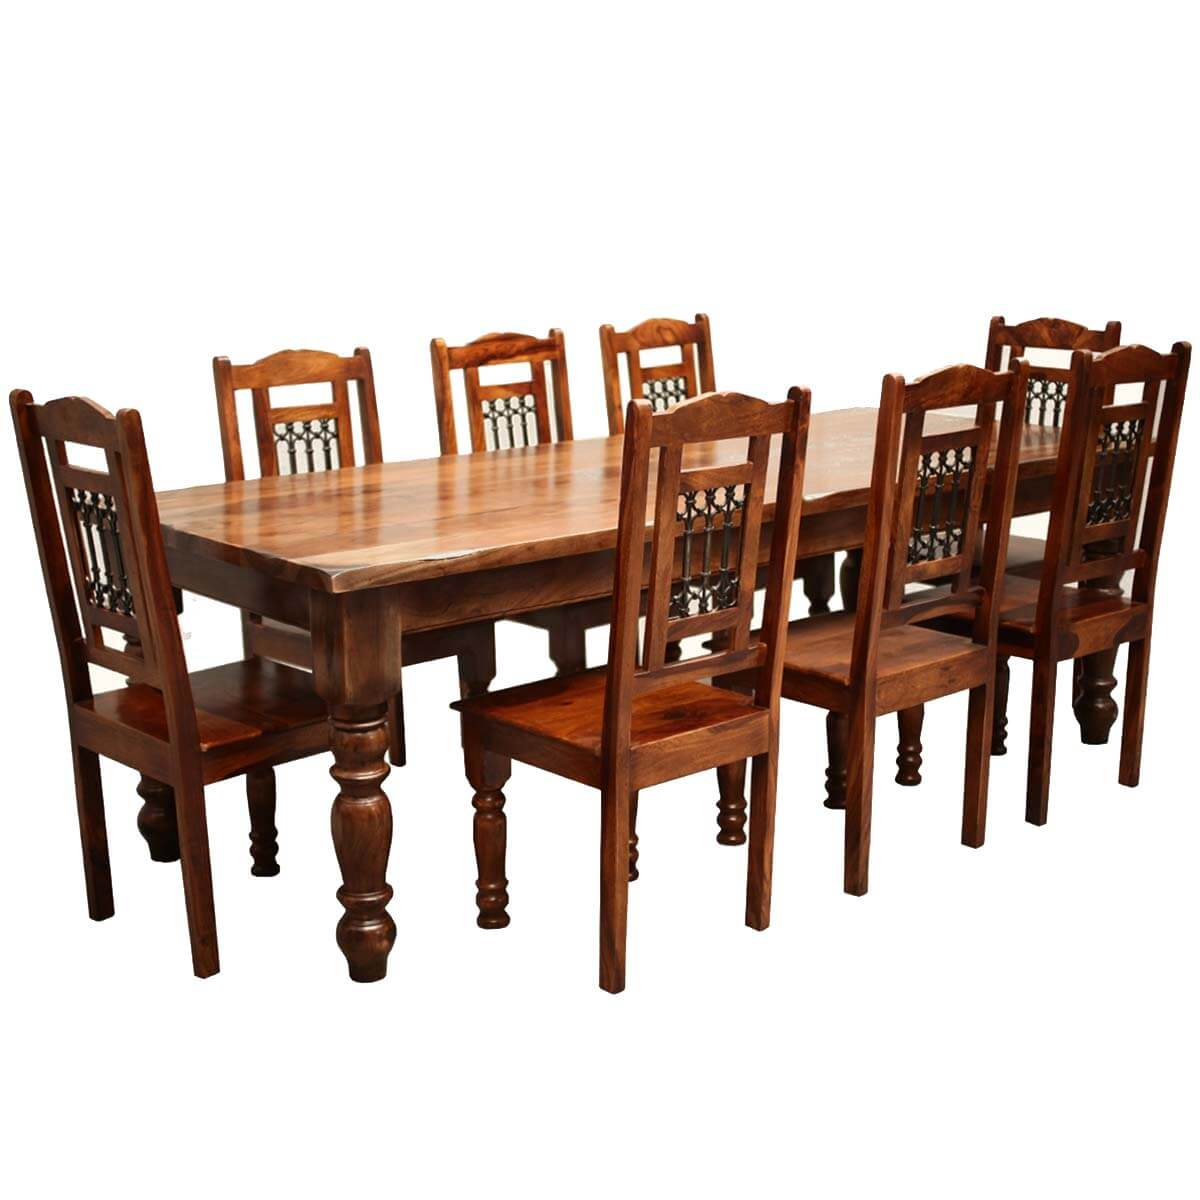 wooden chair design dining bedroom hanging cheap rustic furniture solid wood large table and 8 set